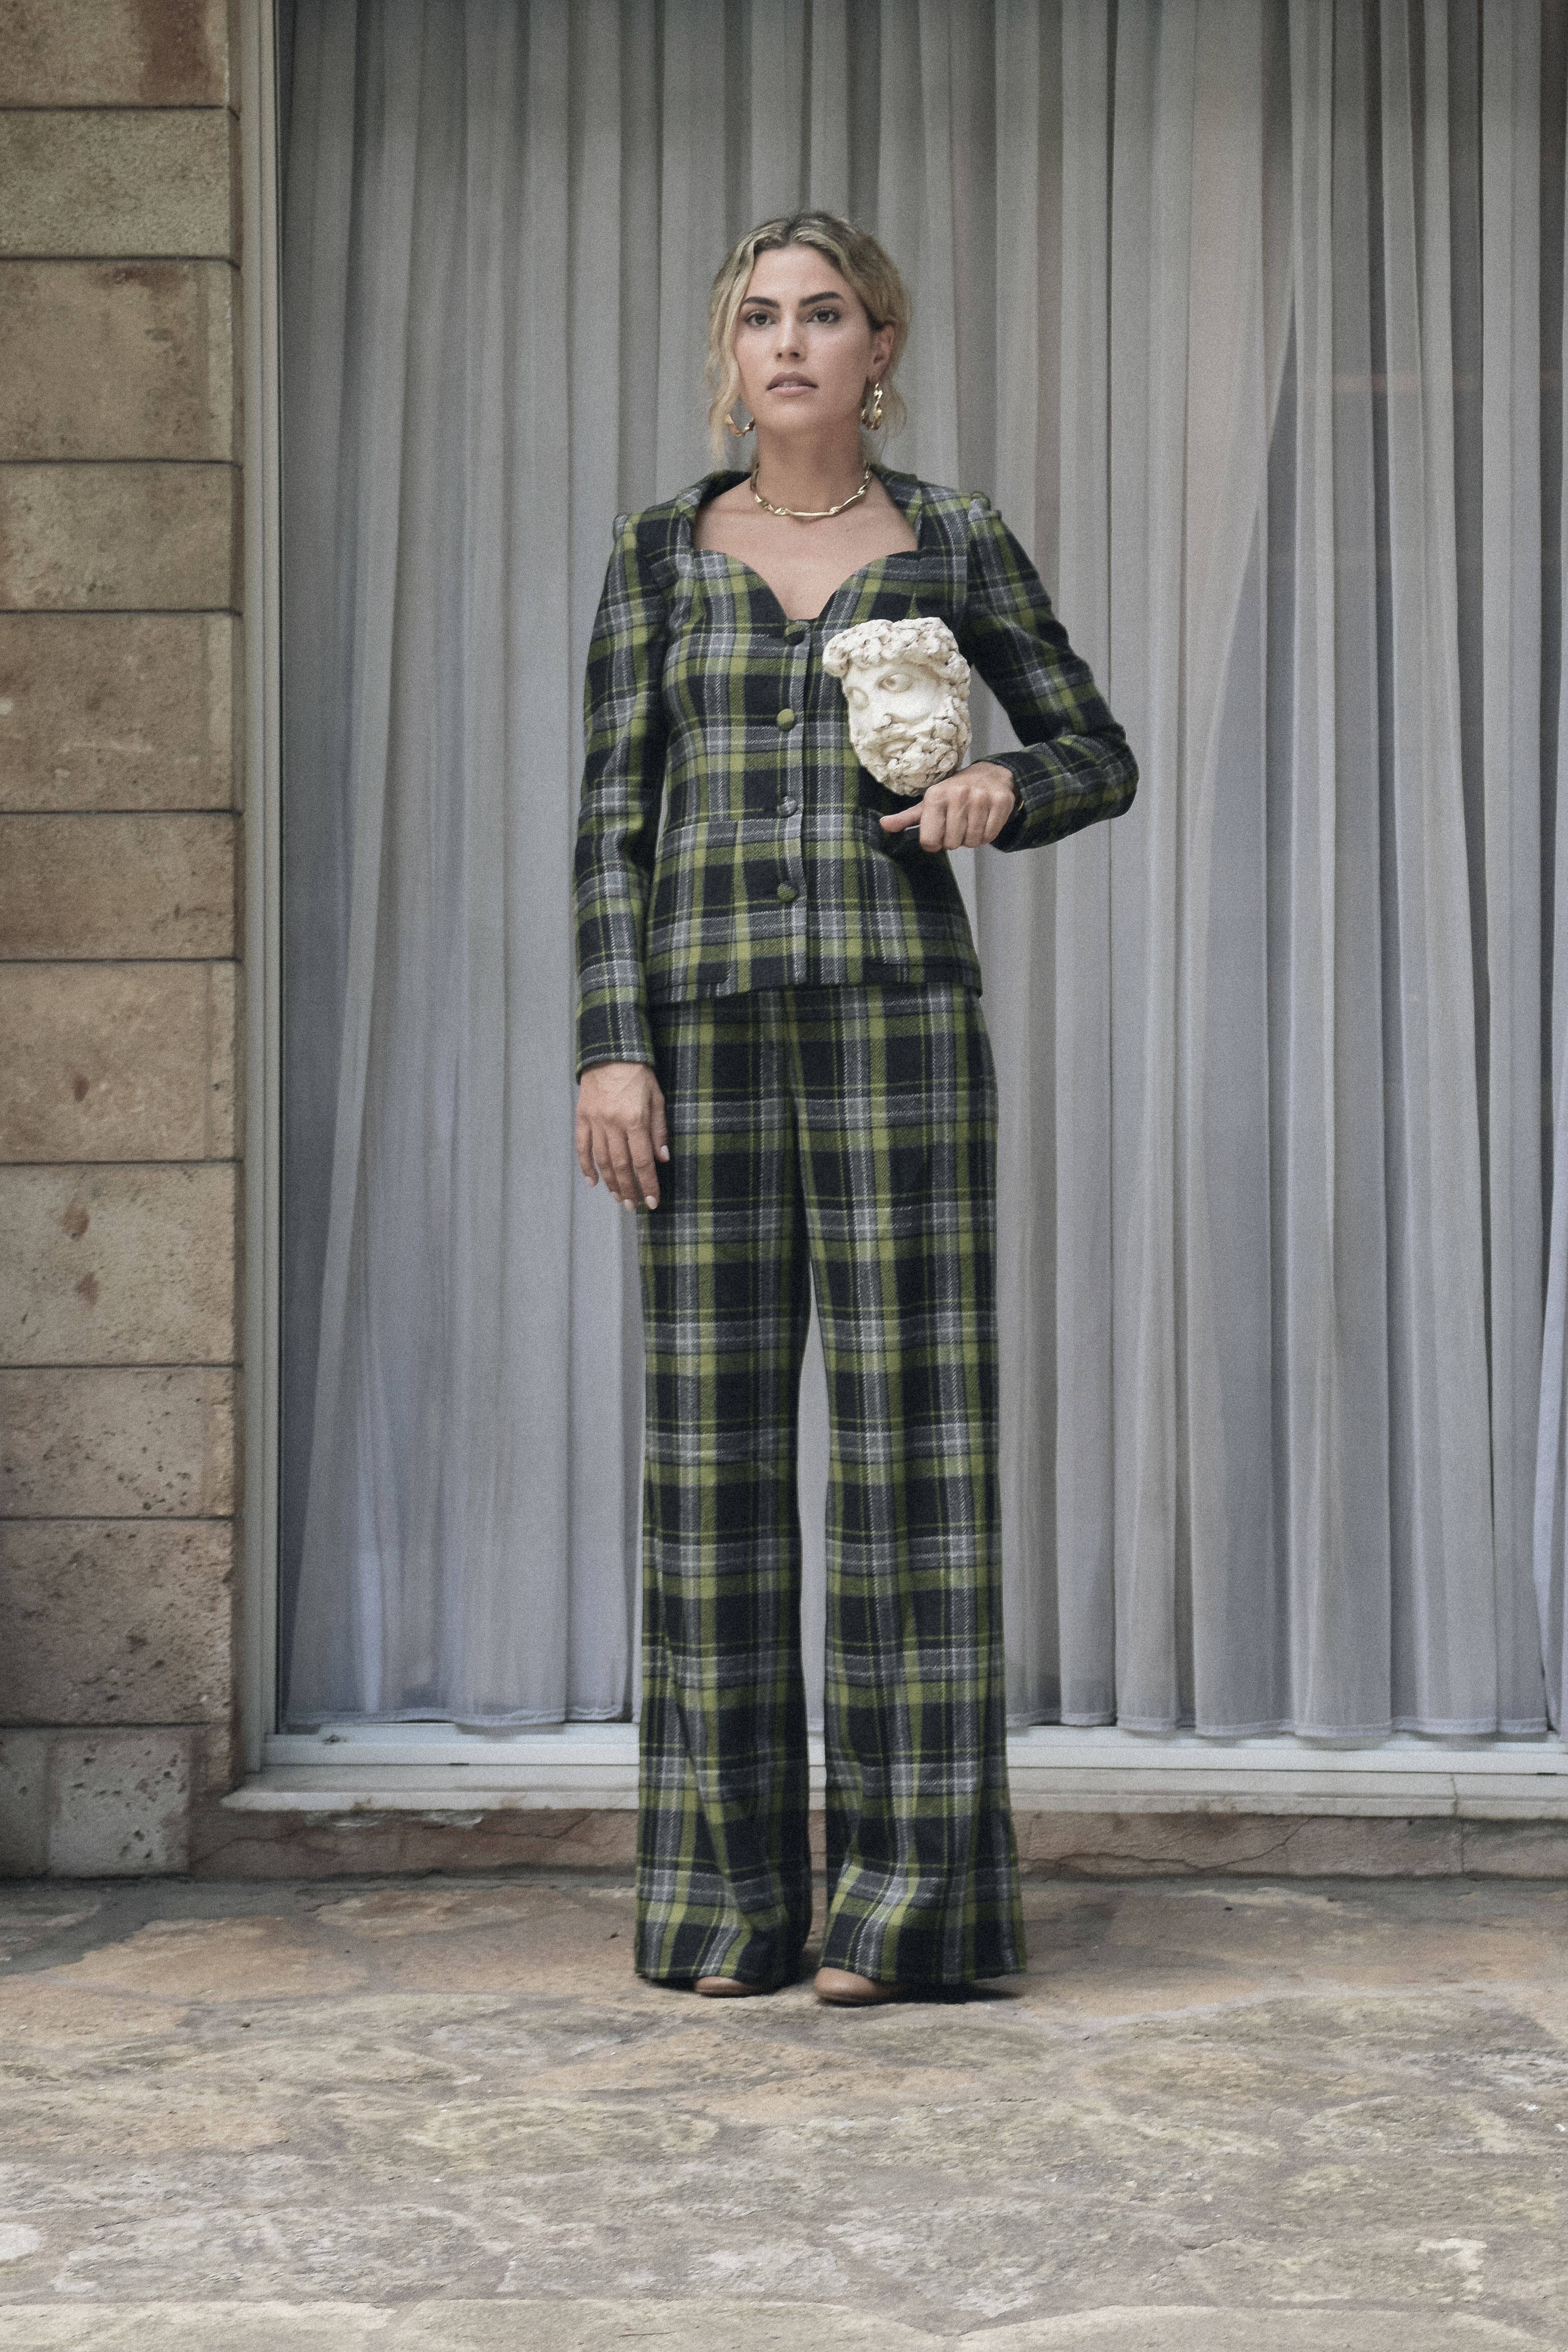 Caspien Pants - Green checks by Jessica K on curated-crowd.com